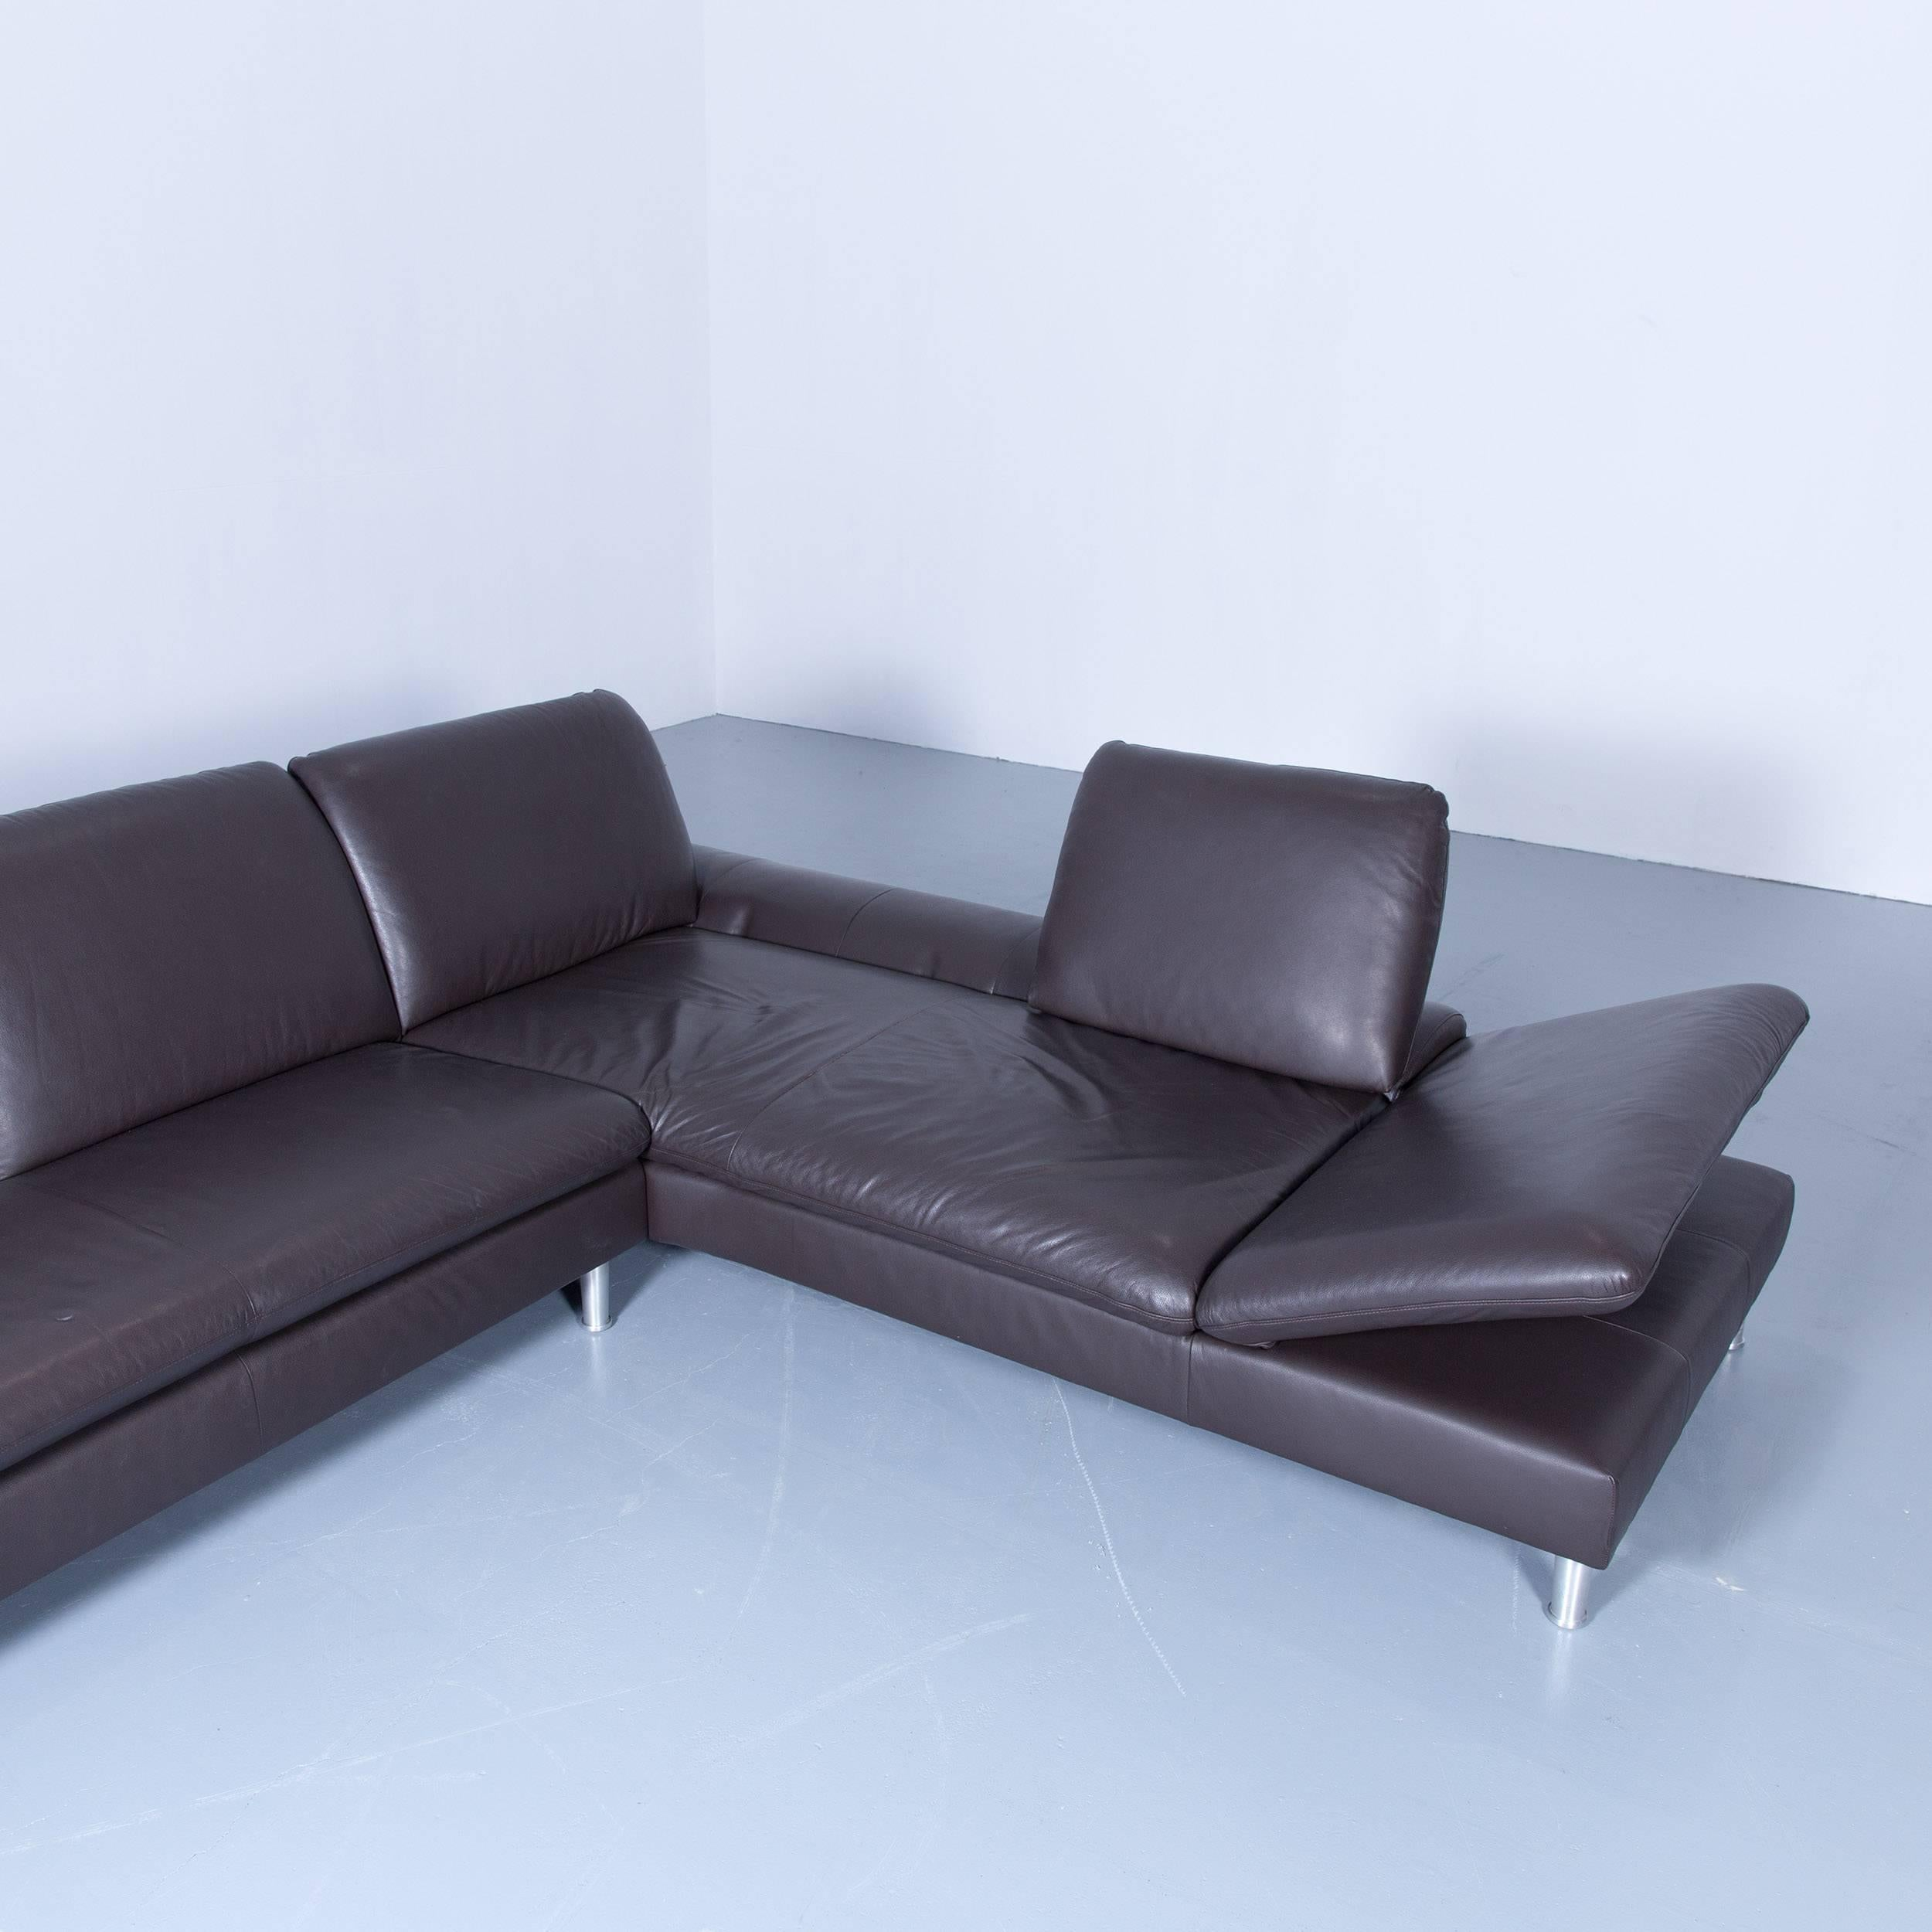 Cheap Willi Schillig Loop Designer Corner Sofa Set Leather Brown Function  Couch Modern At Stdibs With Sofa Braun